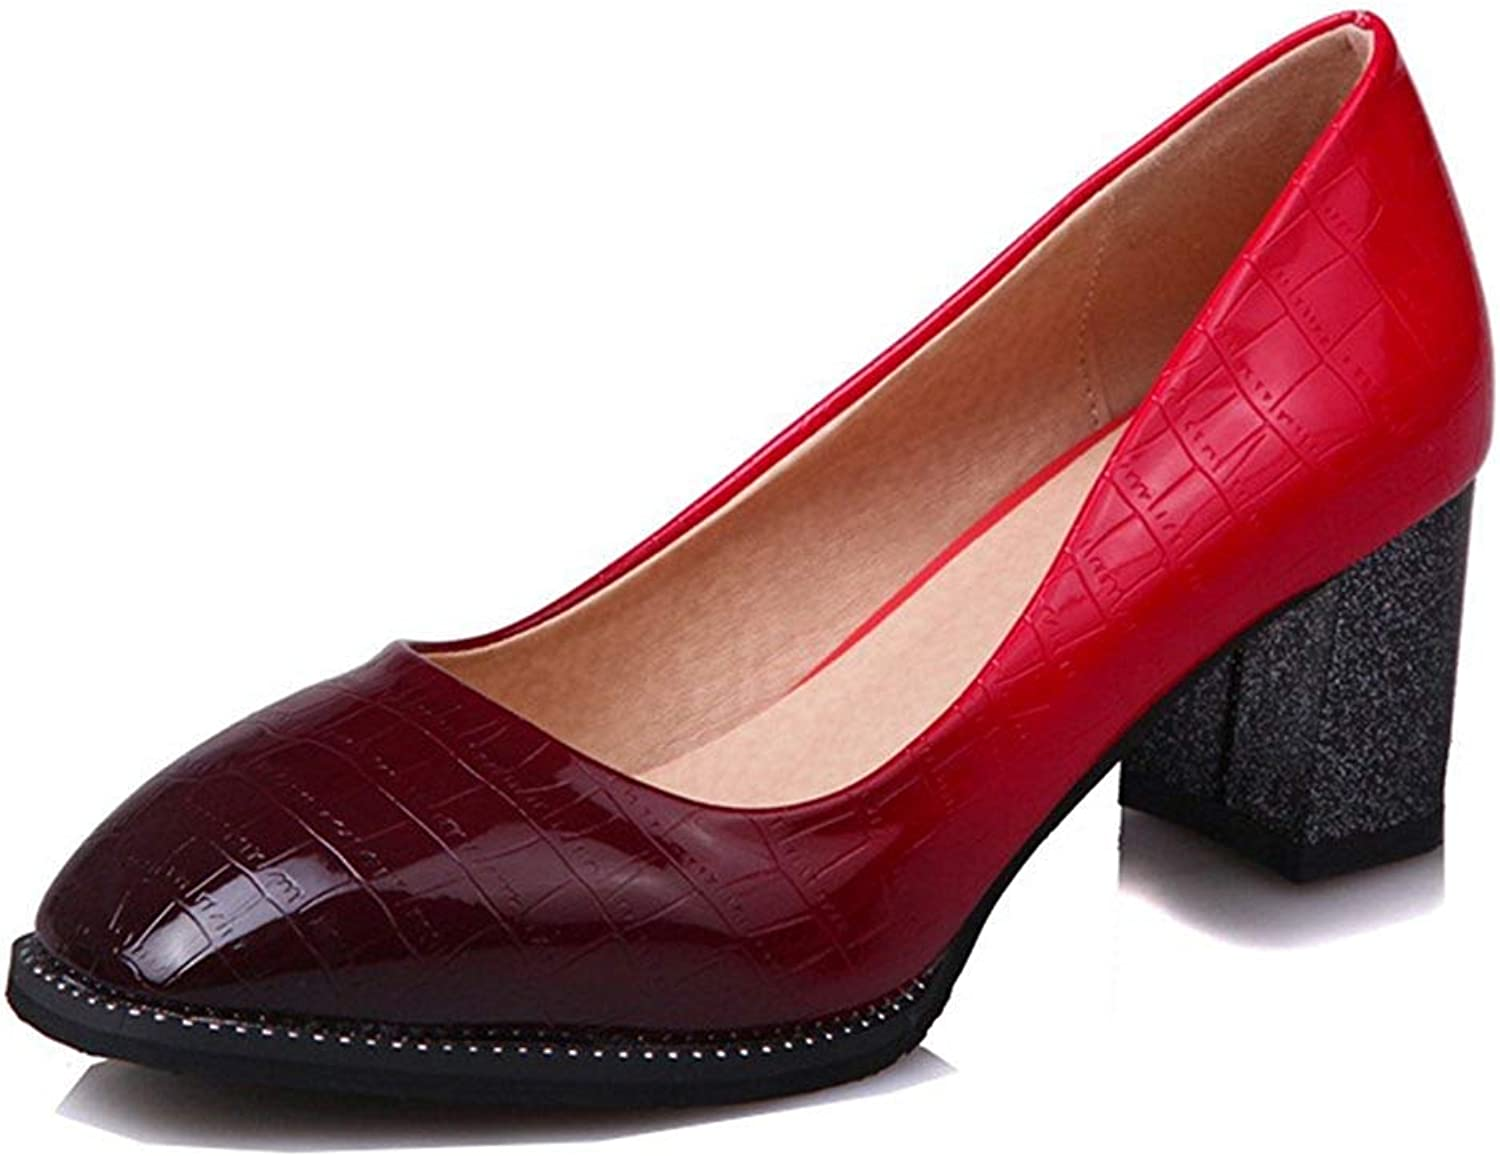 Unm Women's Mid Heel Pumps Wear to Work Office - Dressy Gradient Square Toe - Low Cut Chunky shoes